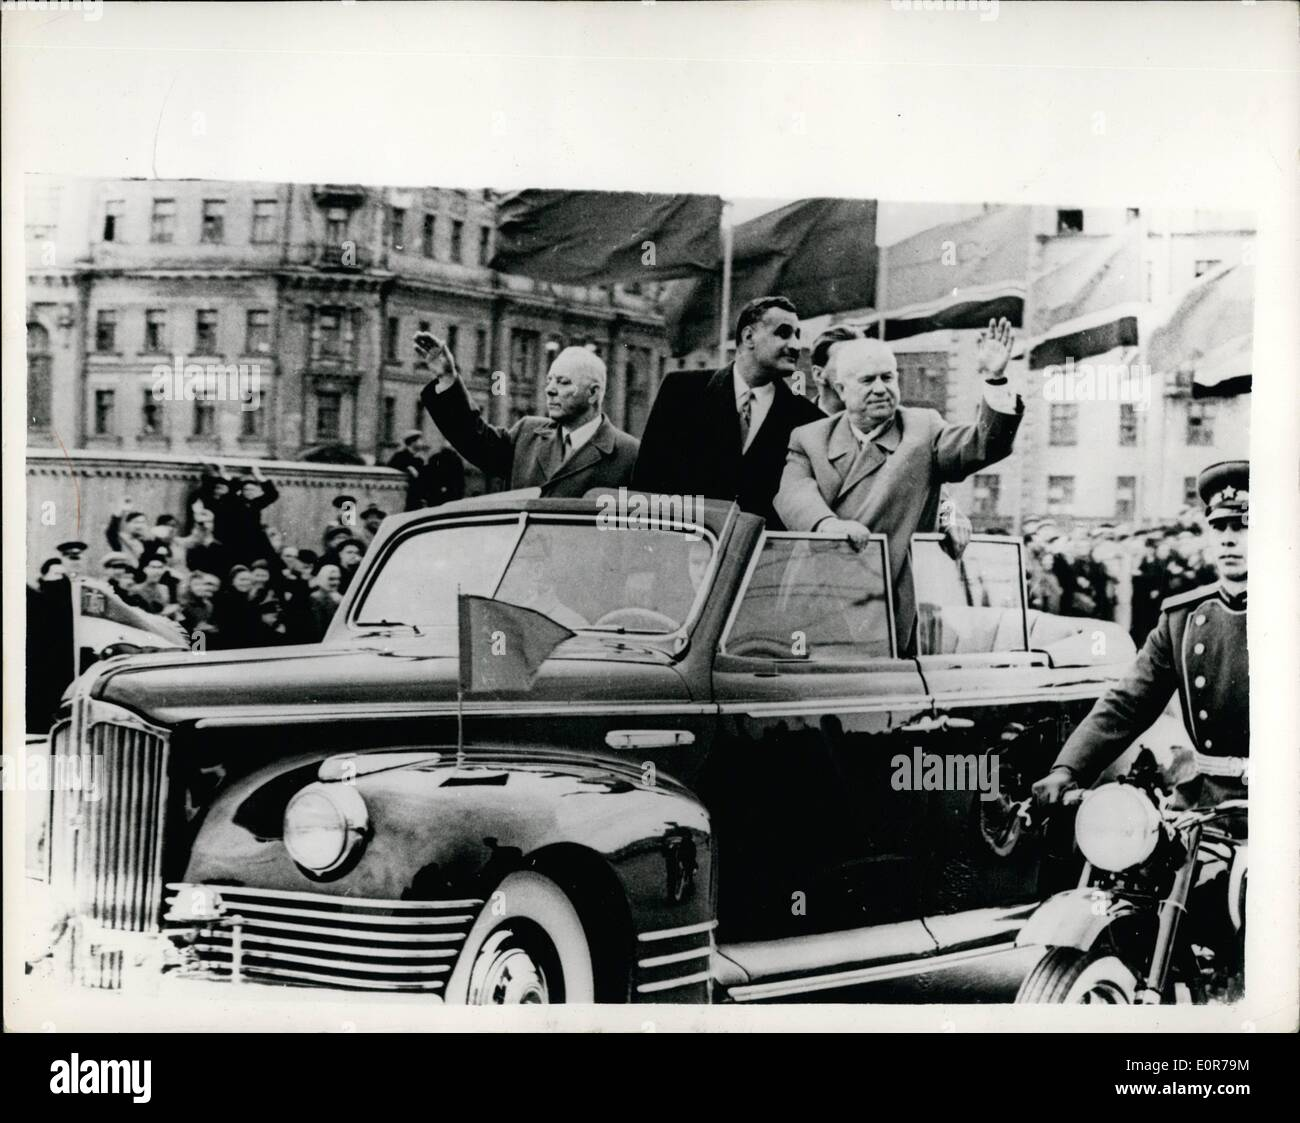 May 05, 1958 - President Nasser Arrives In Moscow: Gamal Abdel Nasser, President of the United Arab Republic entre), - Stock Image